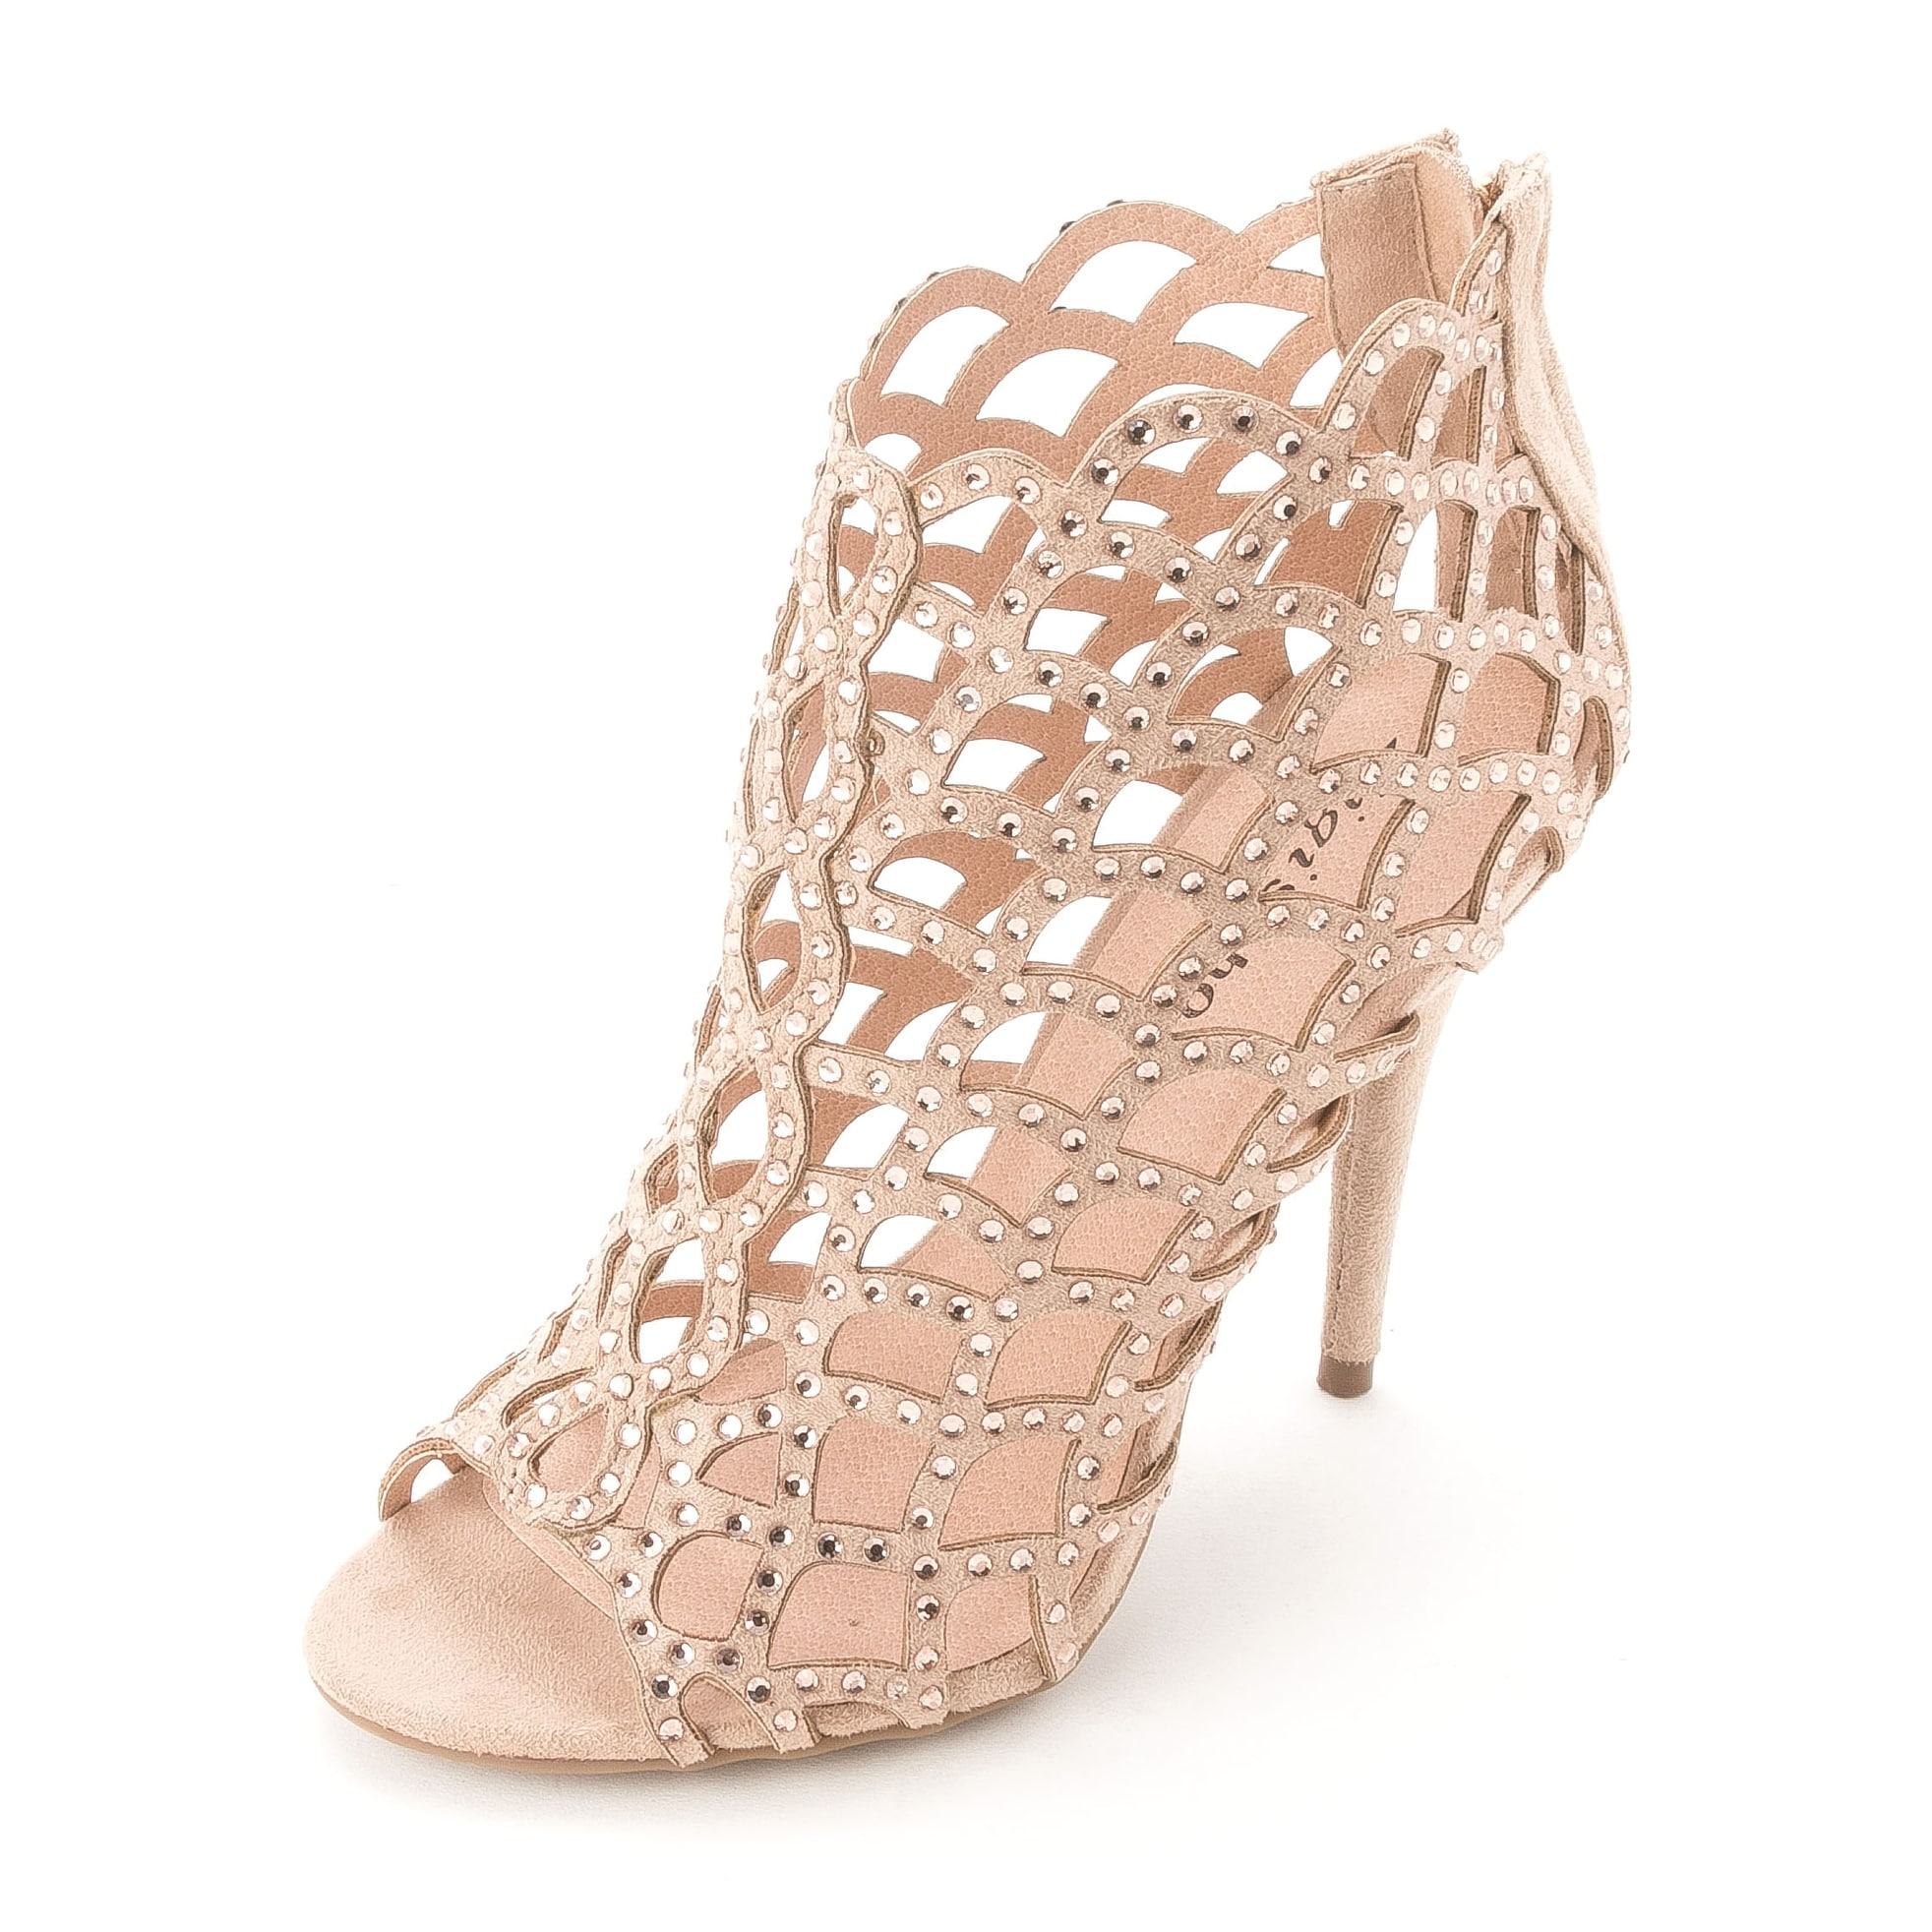 1c4c5d9123b17b Shop Zigi Soho Womens Duran Fabric Open Toe Special Occasion Strappy Sandals  - Free Shipping On Orders Over  45 - Overstock - 14526525